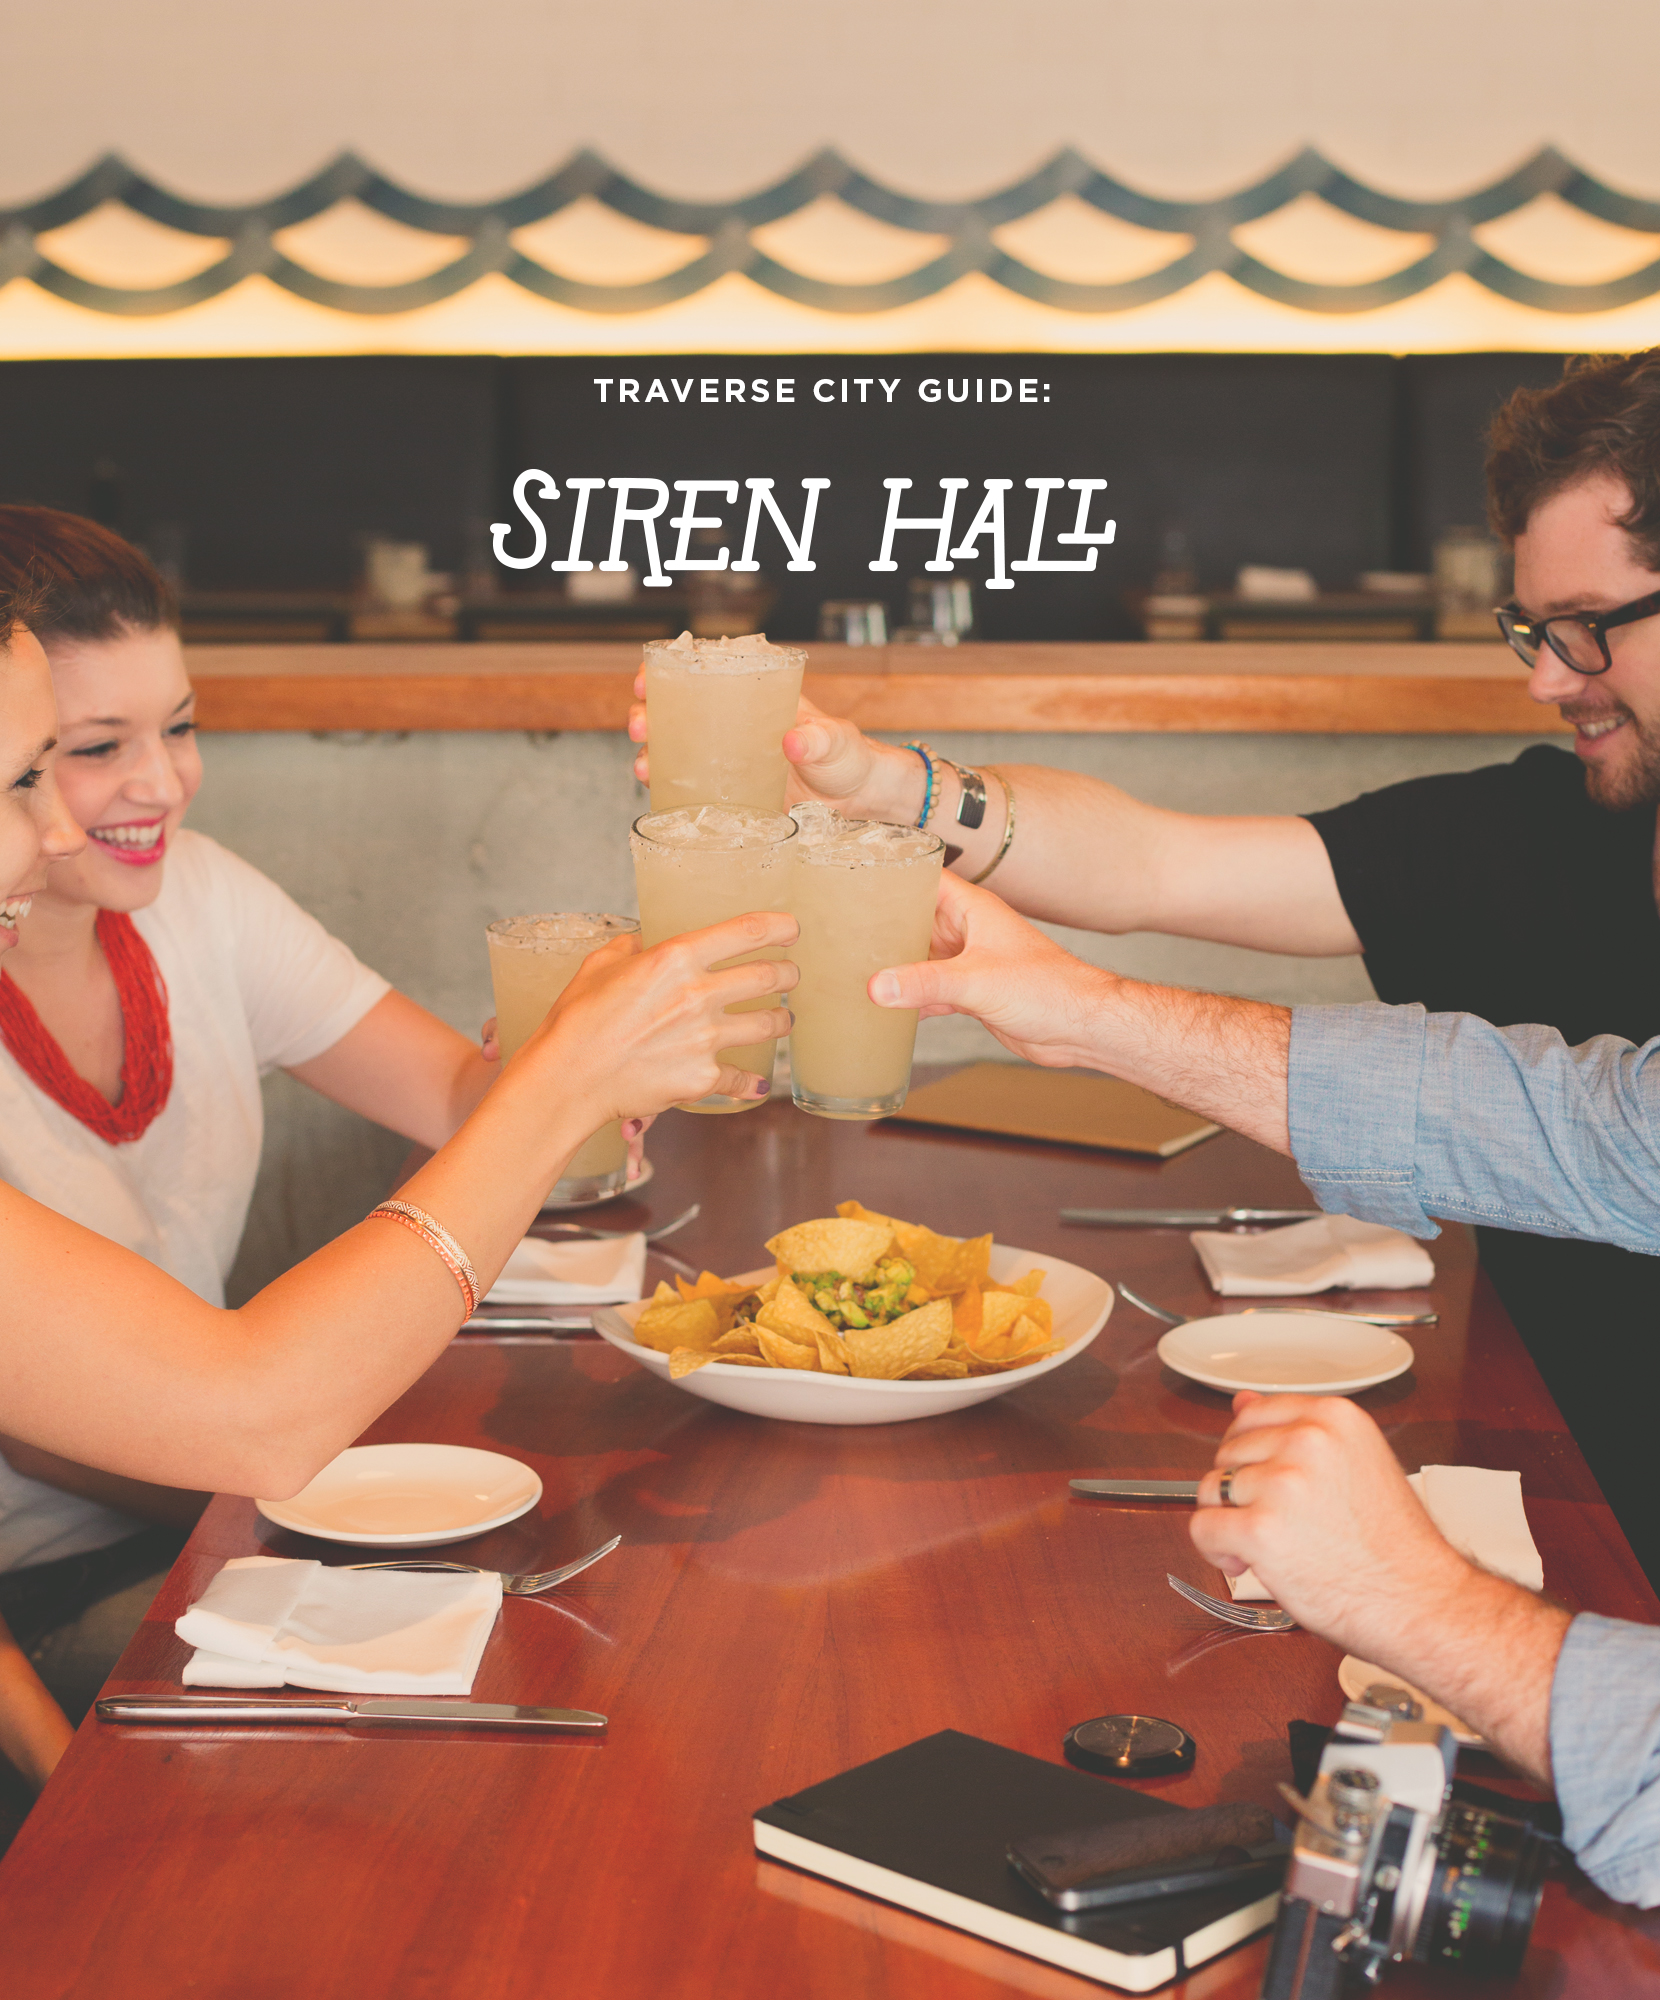 Traverse City Guide: Siren Hall |  The Fresh Exchange